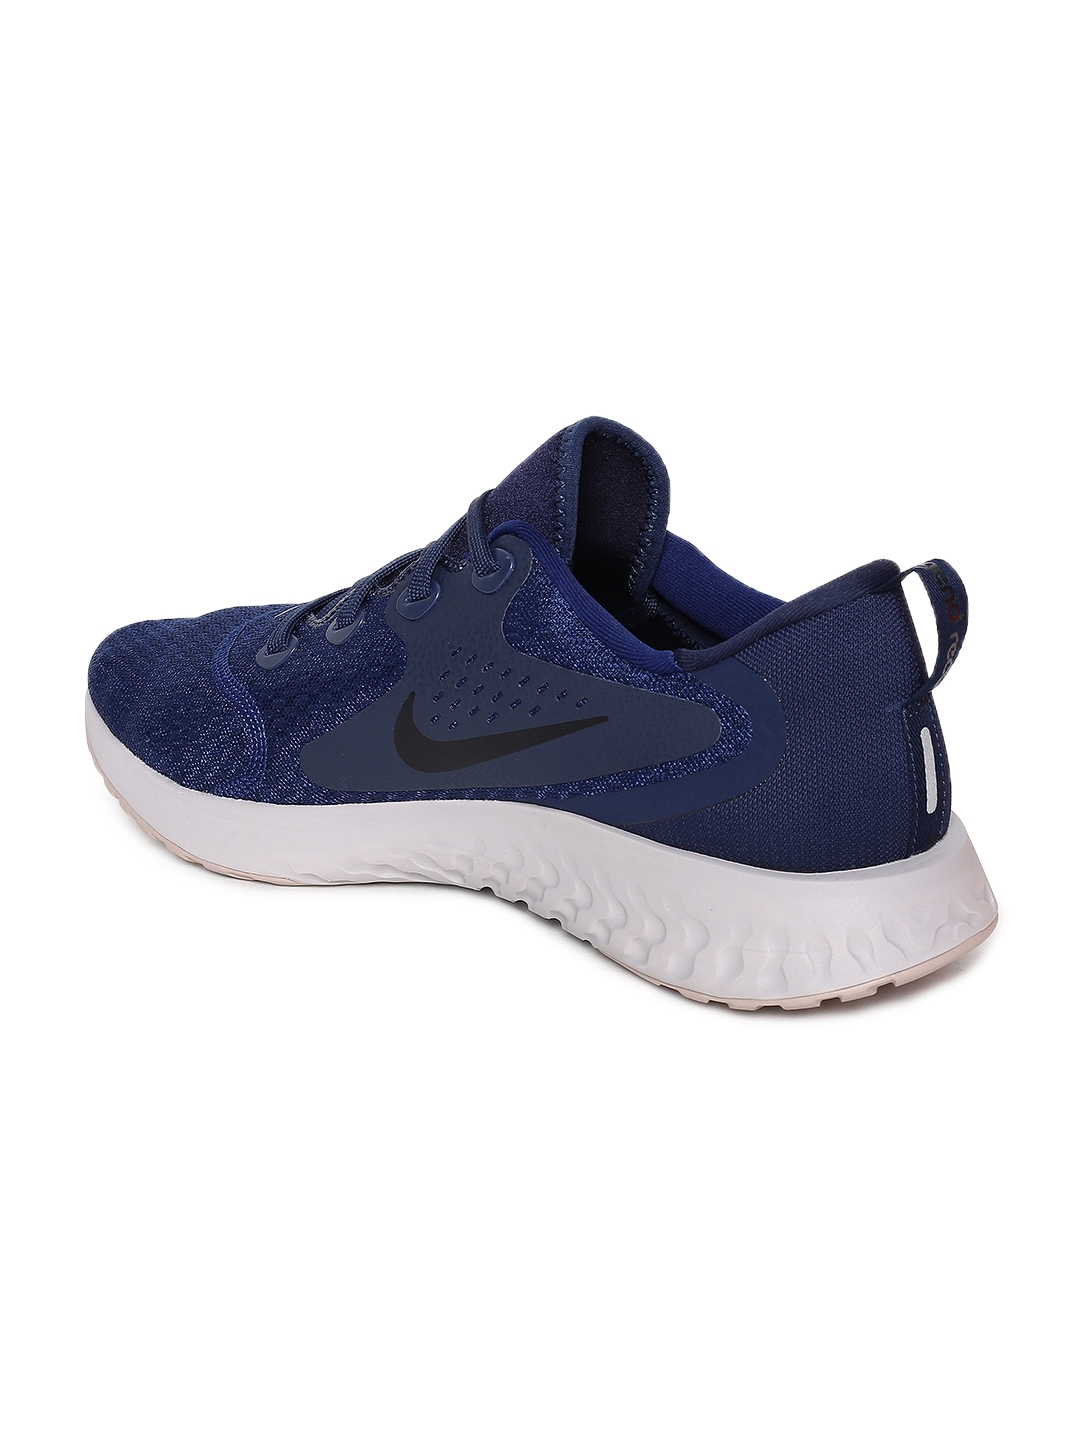 7fc62be827d5d Buy Nike Men Blue LEGEND REACT Running Shoes - Sports Shoes for Men ...